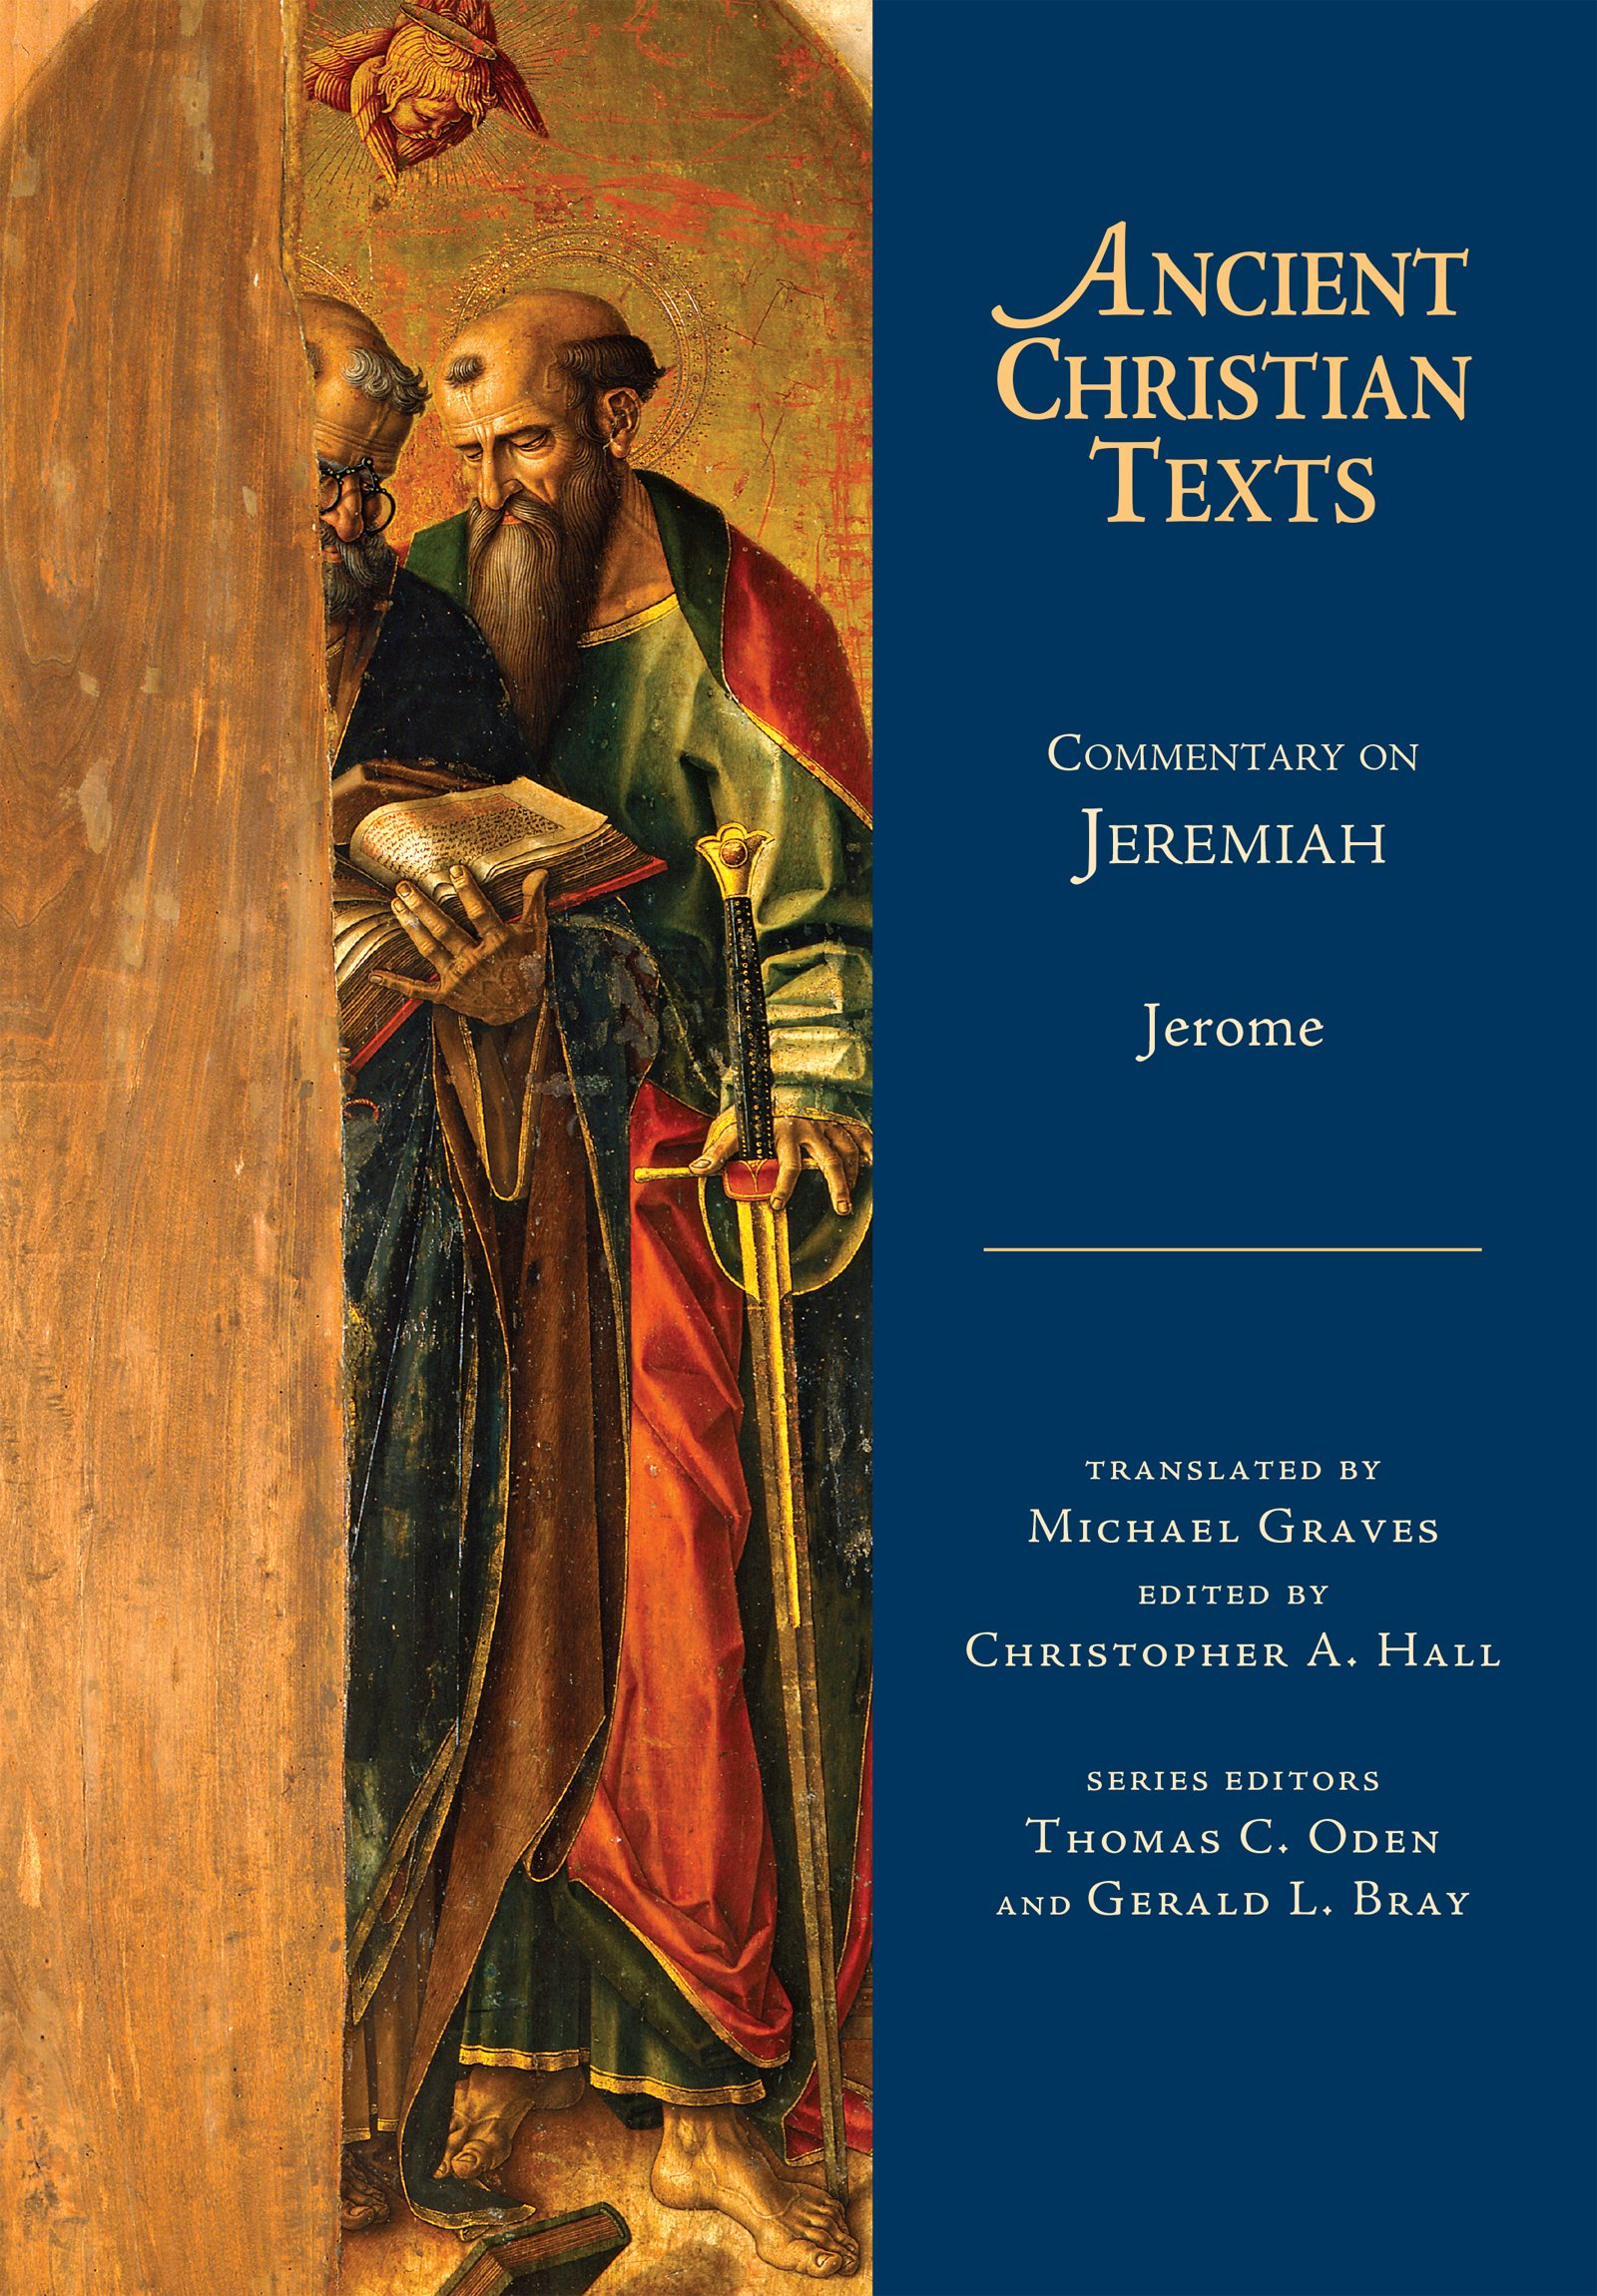 Mentary On Jeremiah Ancient Christian Texts Jerome